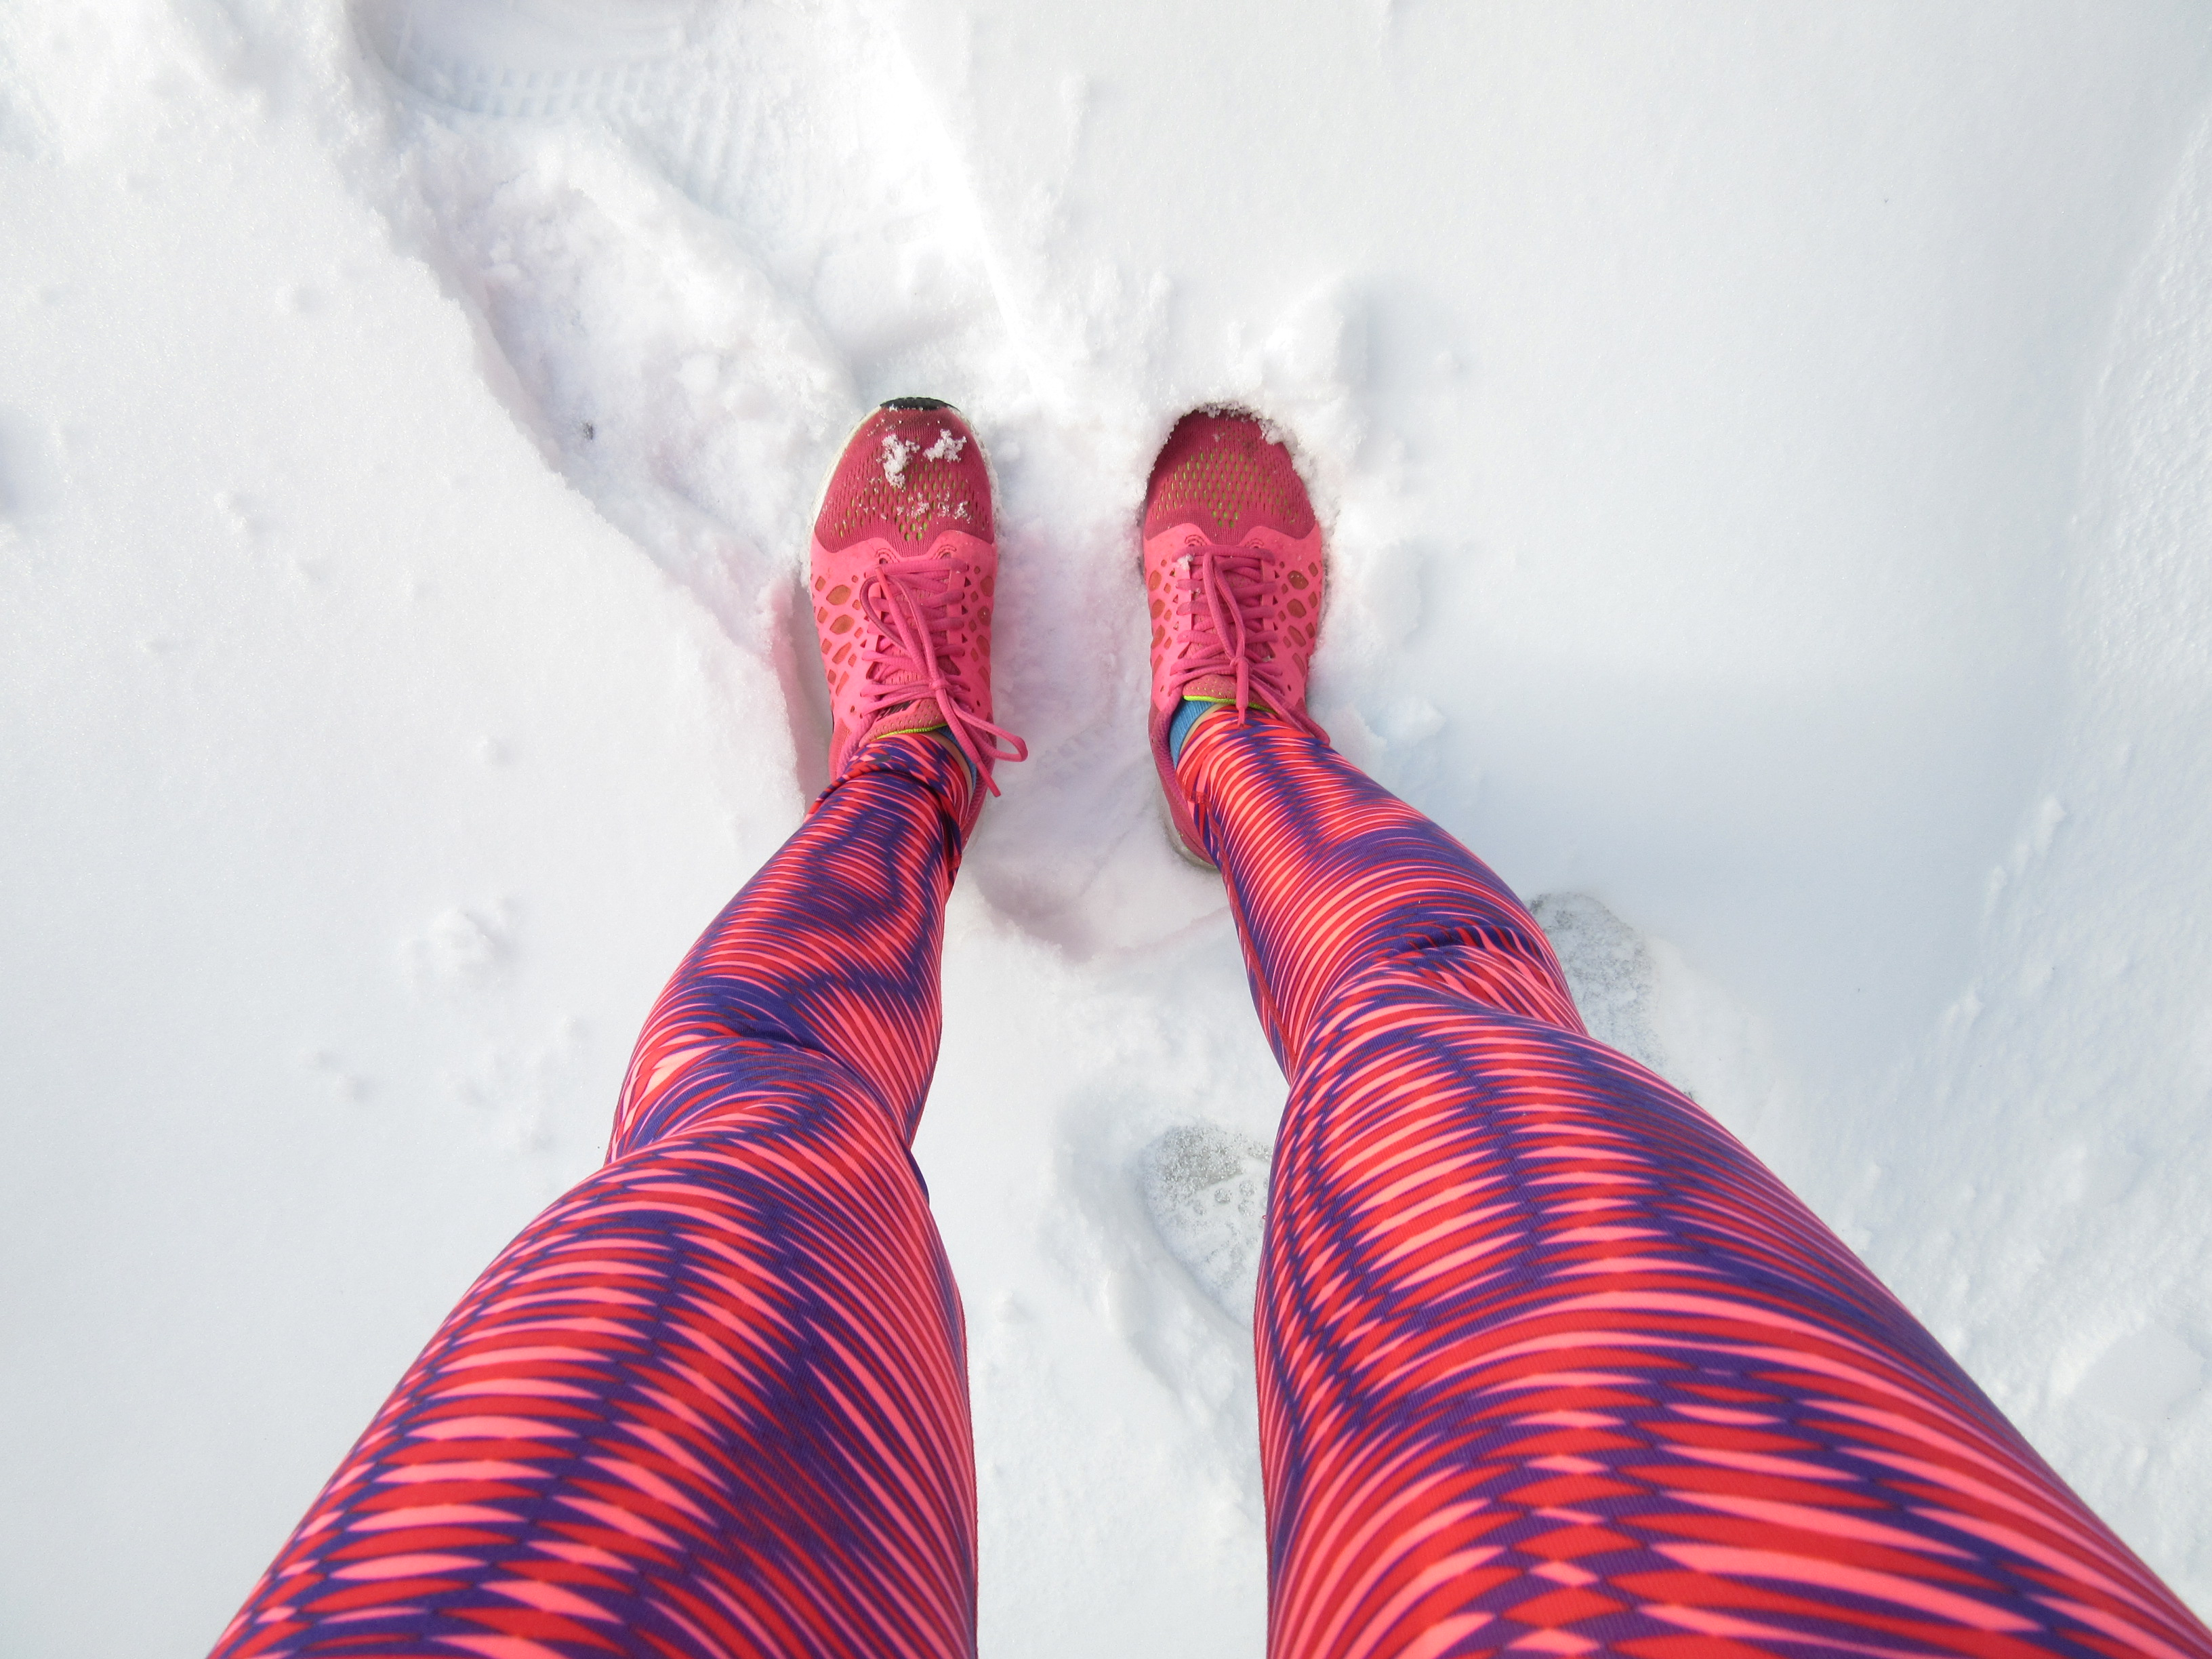 I asked for running tights in bold patterns for Christmas. Santa delivered.